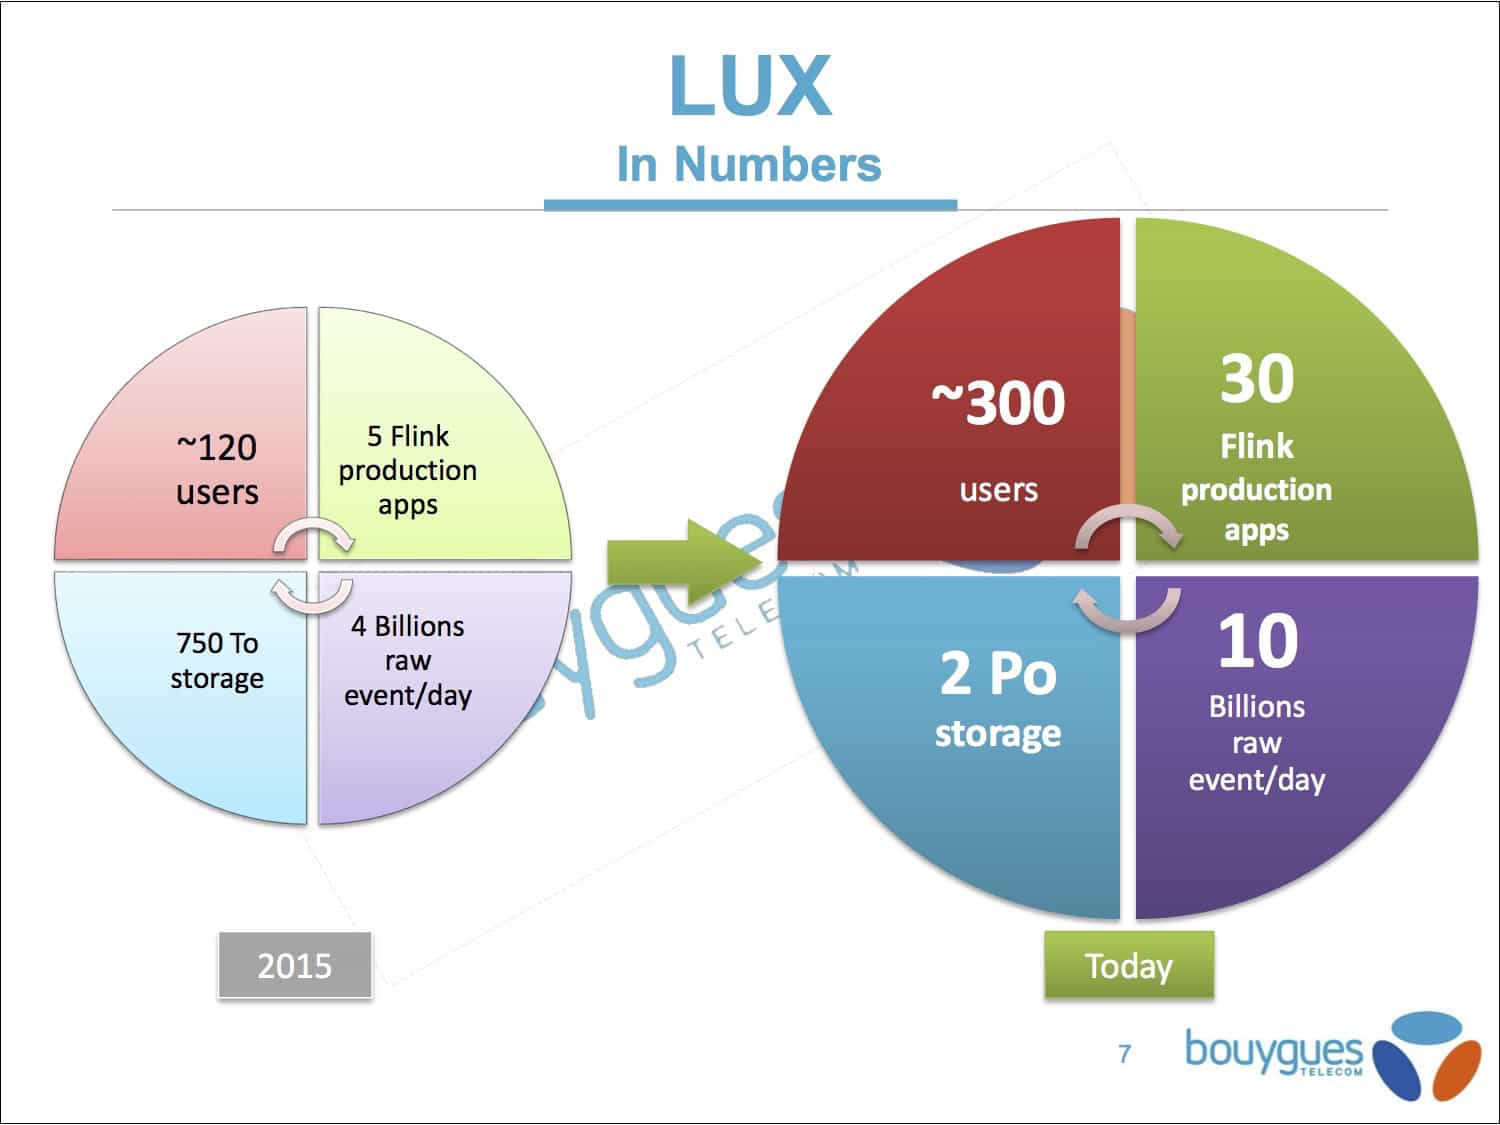 bouygues-slide-new-image